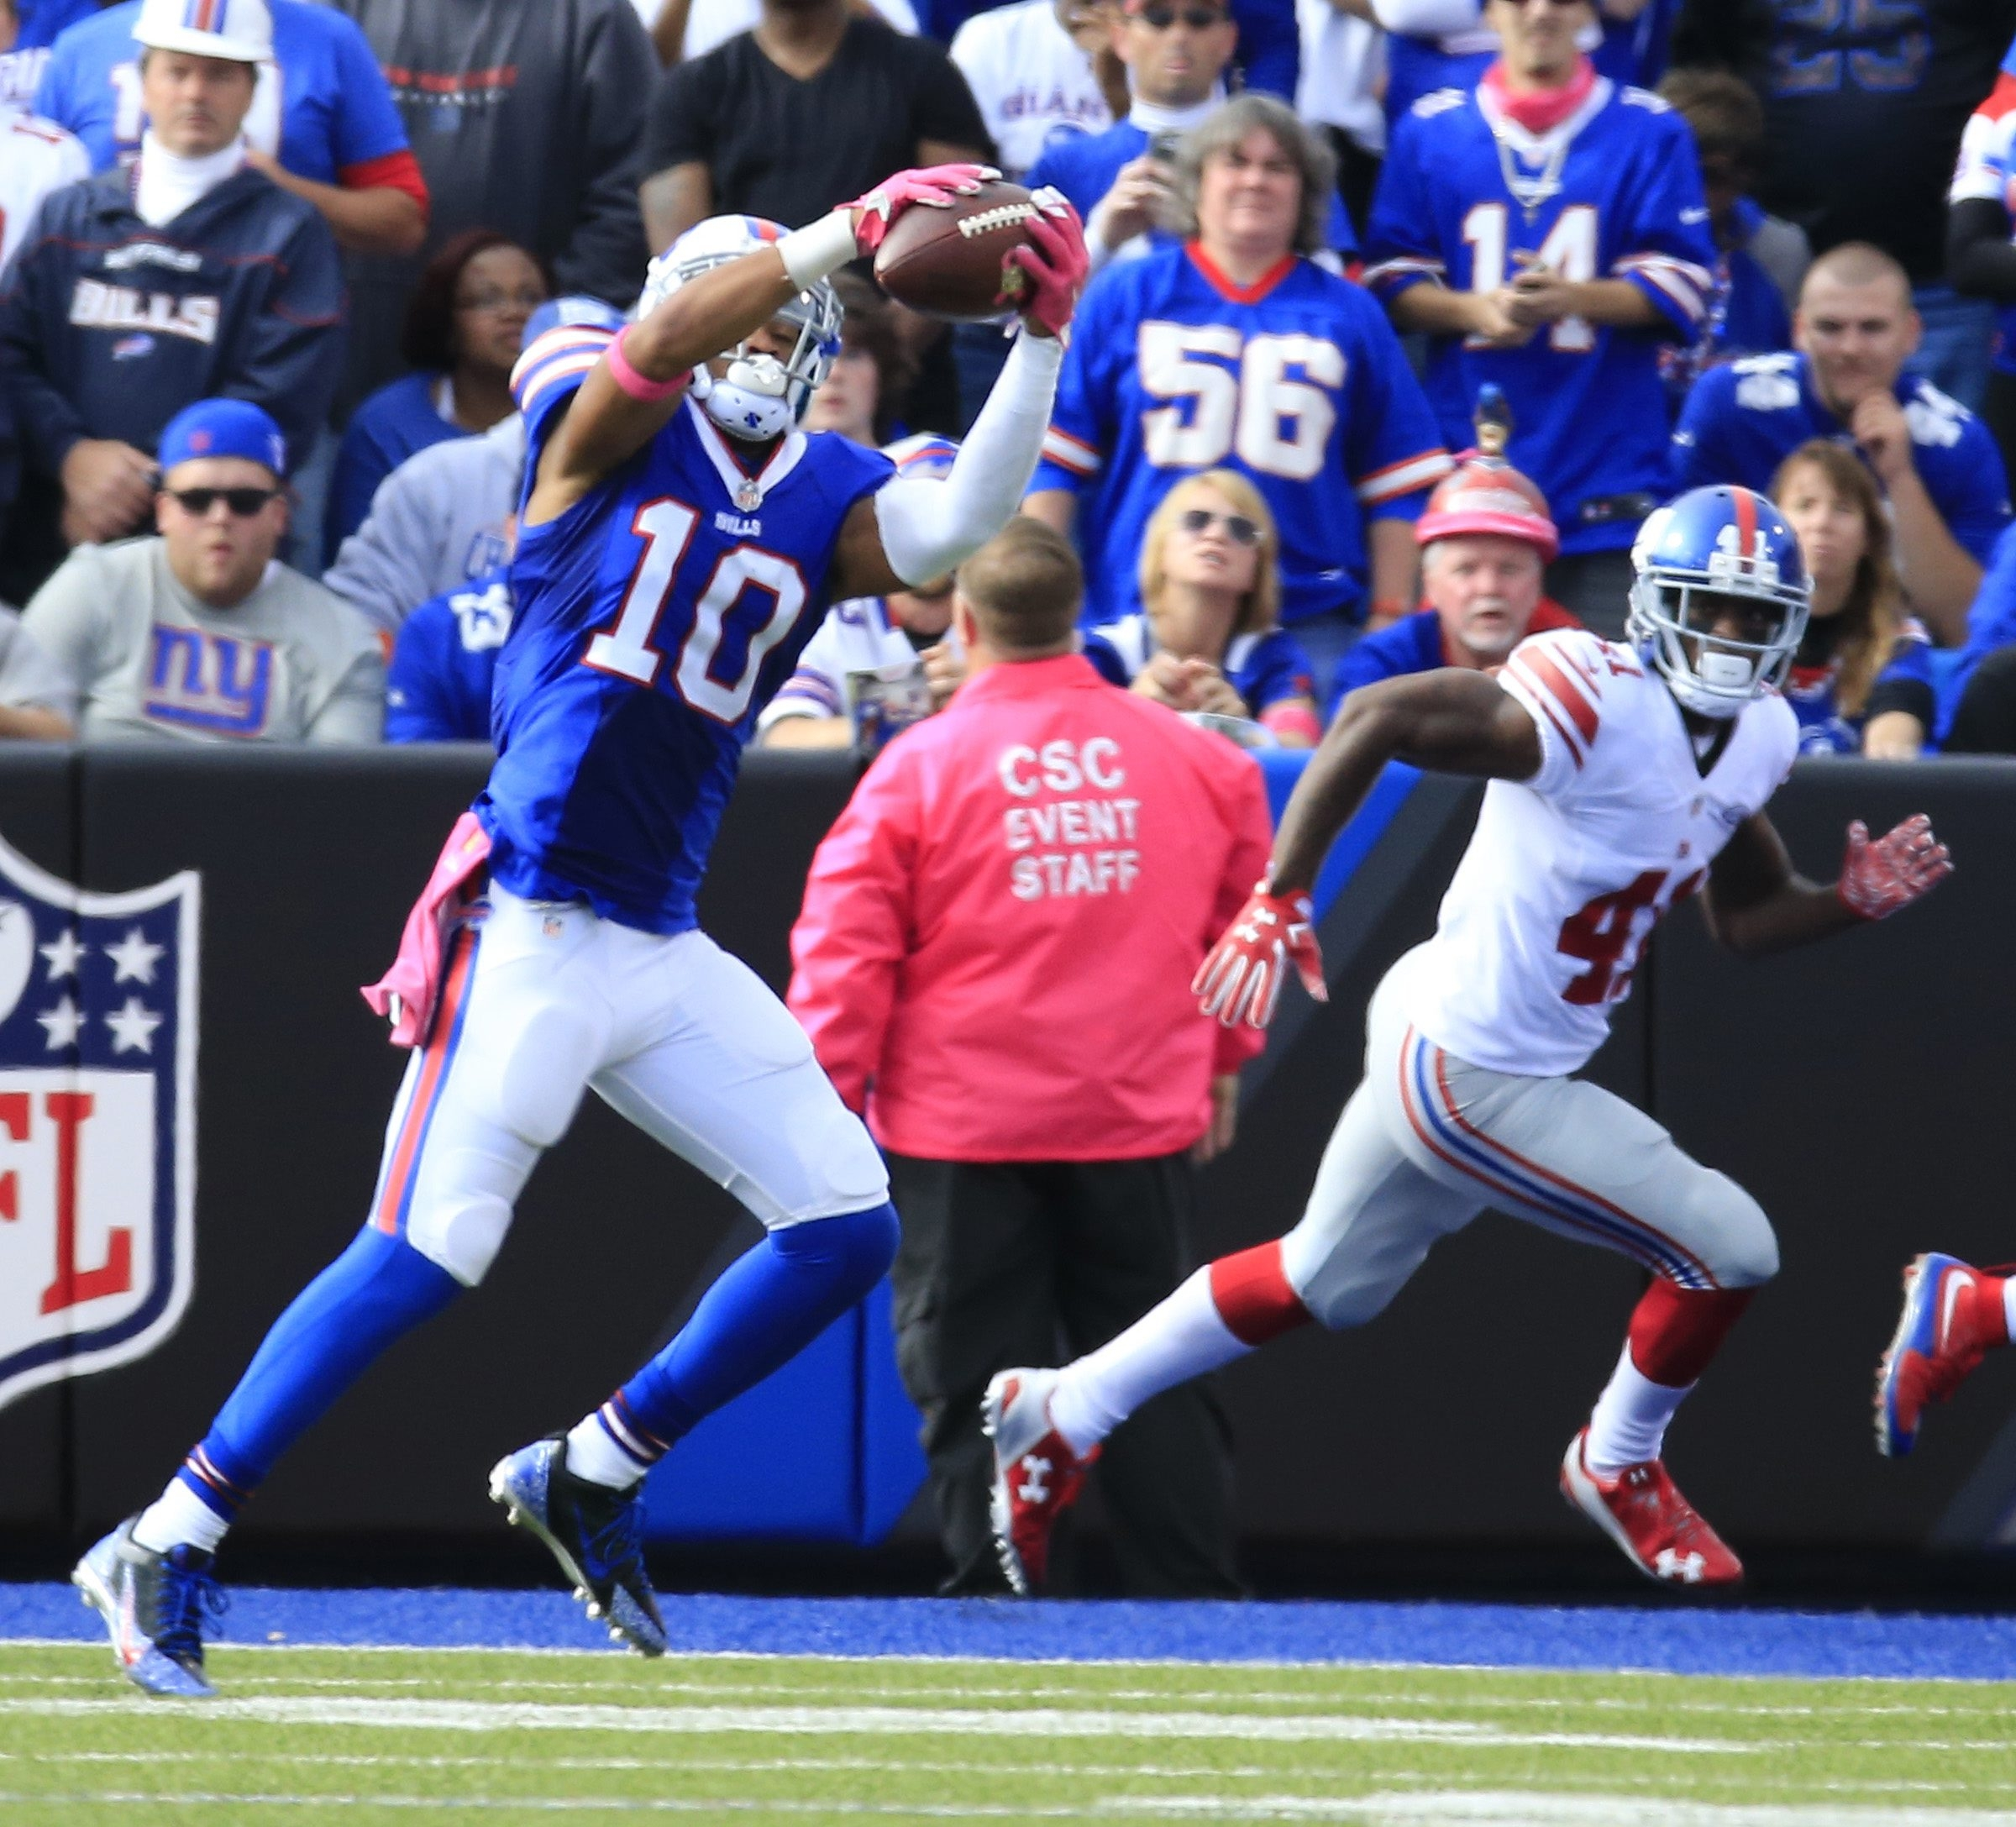 Buffalo Bills Robert Woods makea a catch against the  New York Giants during the fourth quarter action at Ralph Wilson Stadium on Sunday, Oct. 4, 2015.  (Harry Scull Jr./Buffalo News)